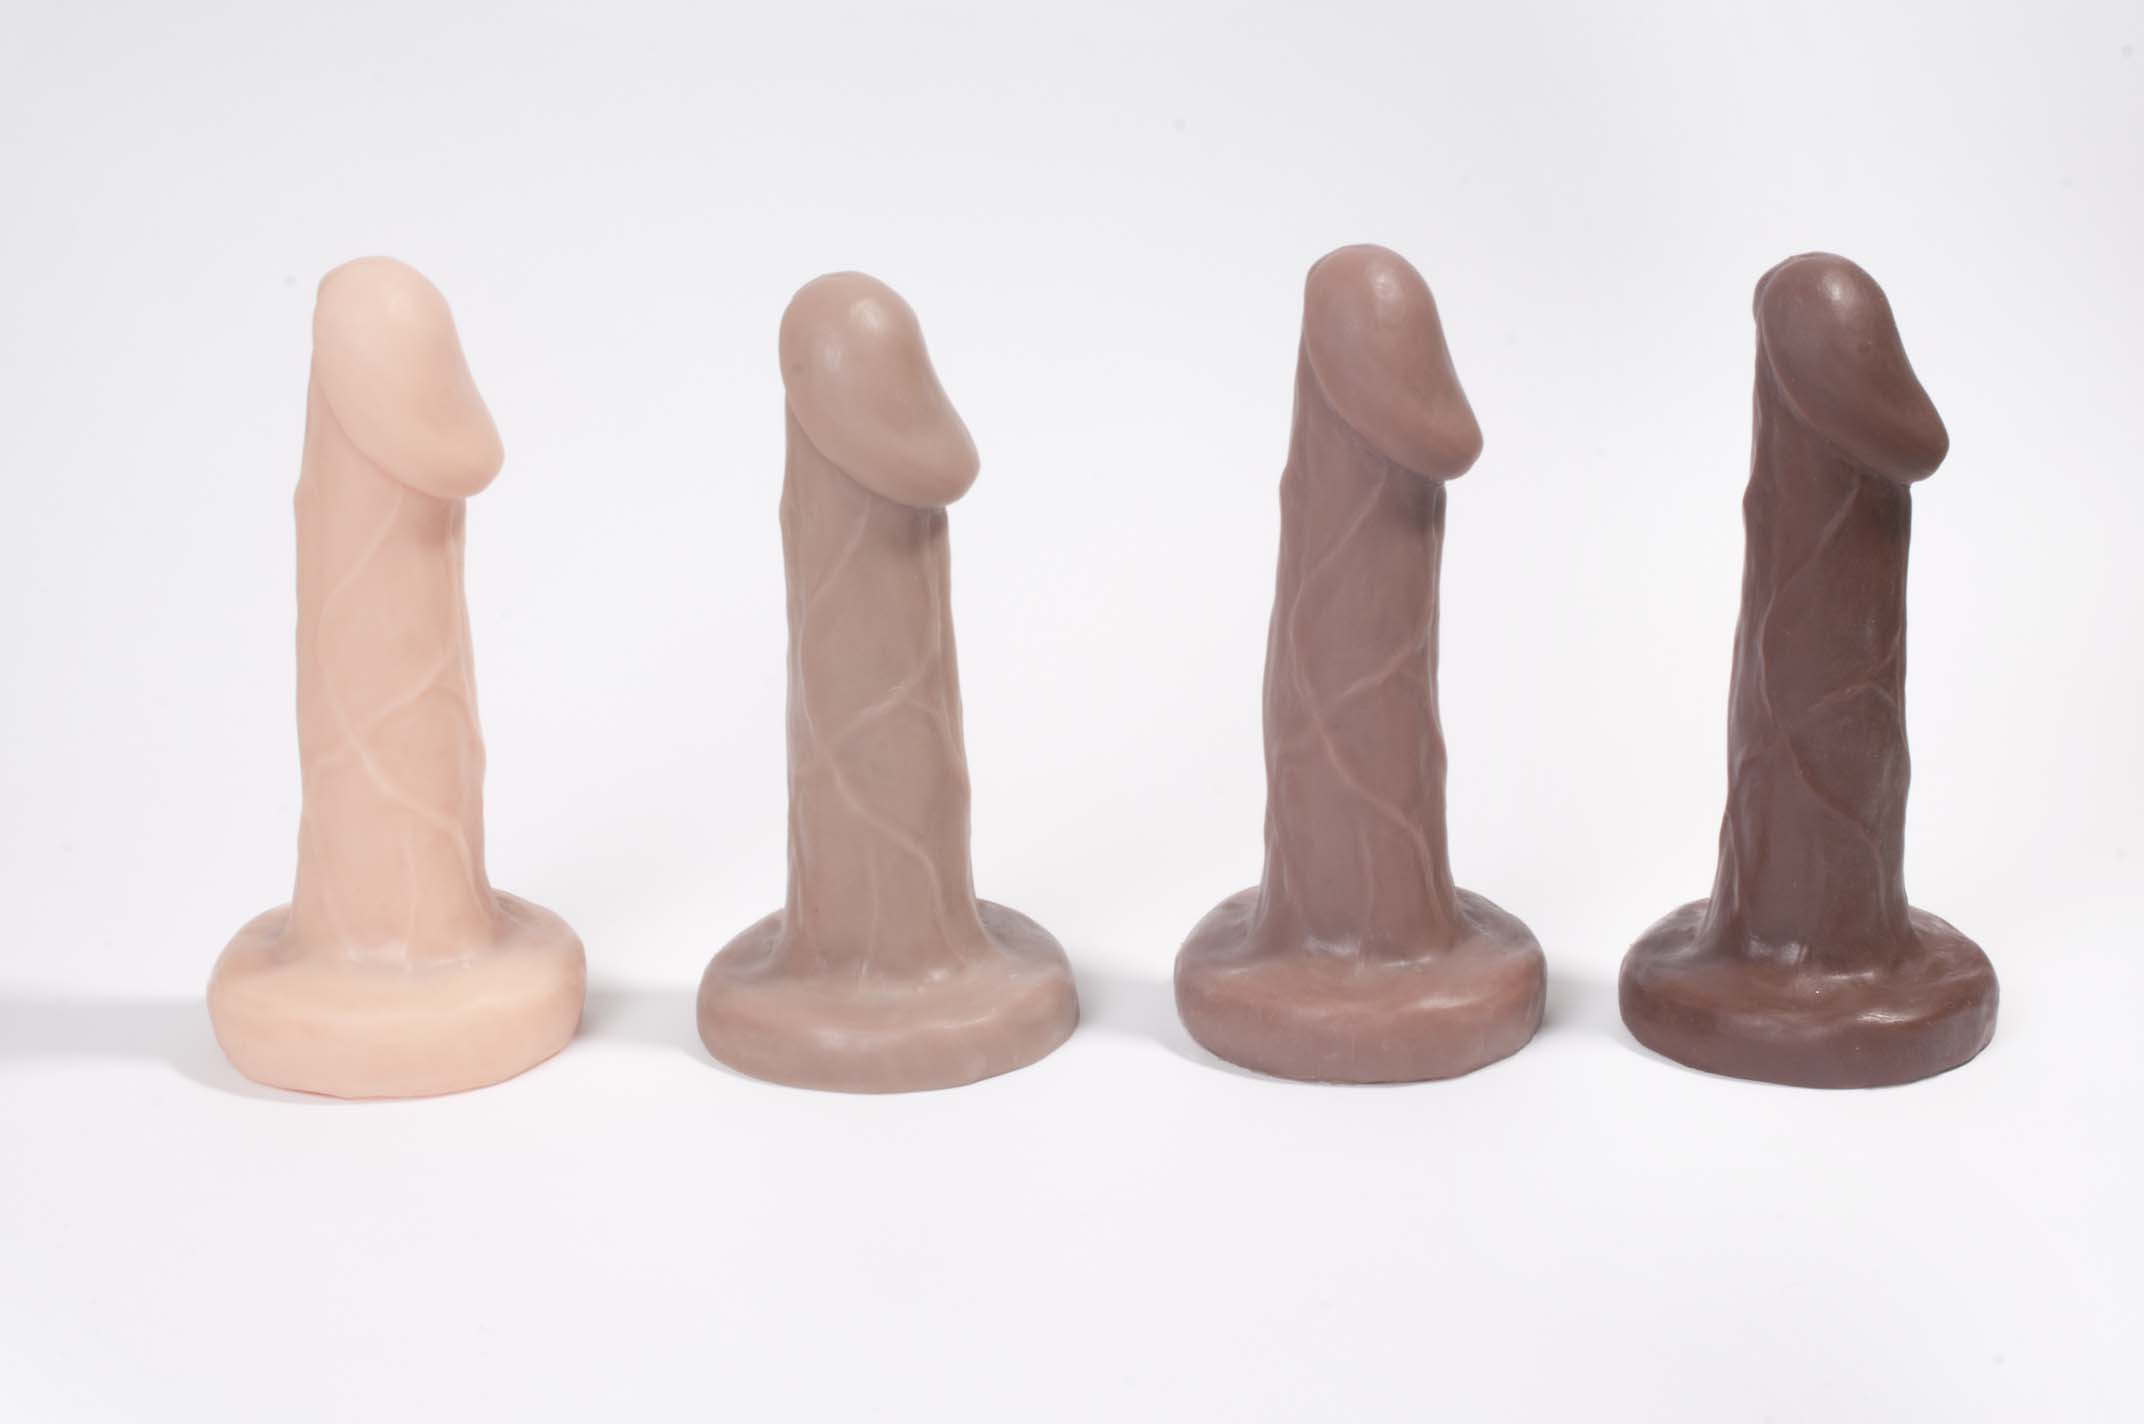 Review: Shilo, the Bendable Silicone Packing Cock by NY Toy Collective